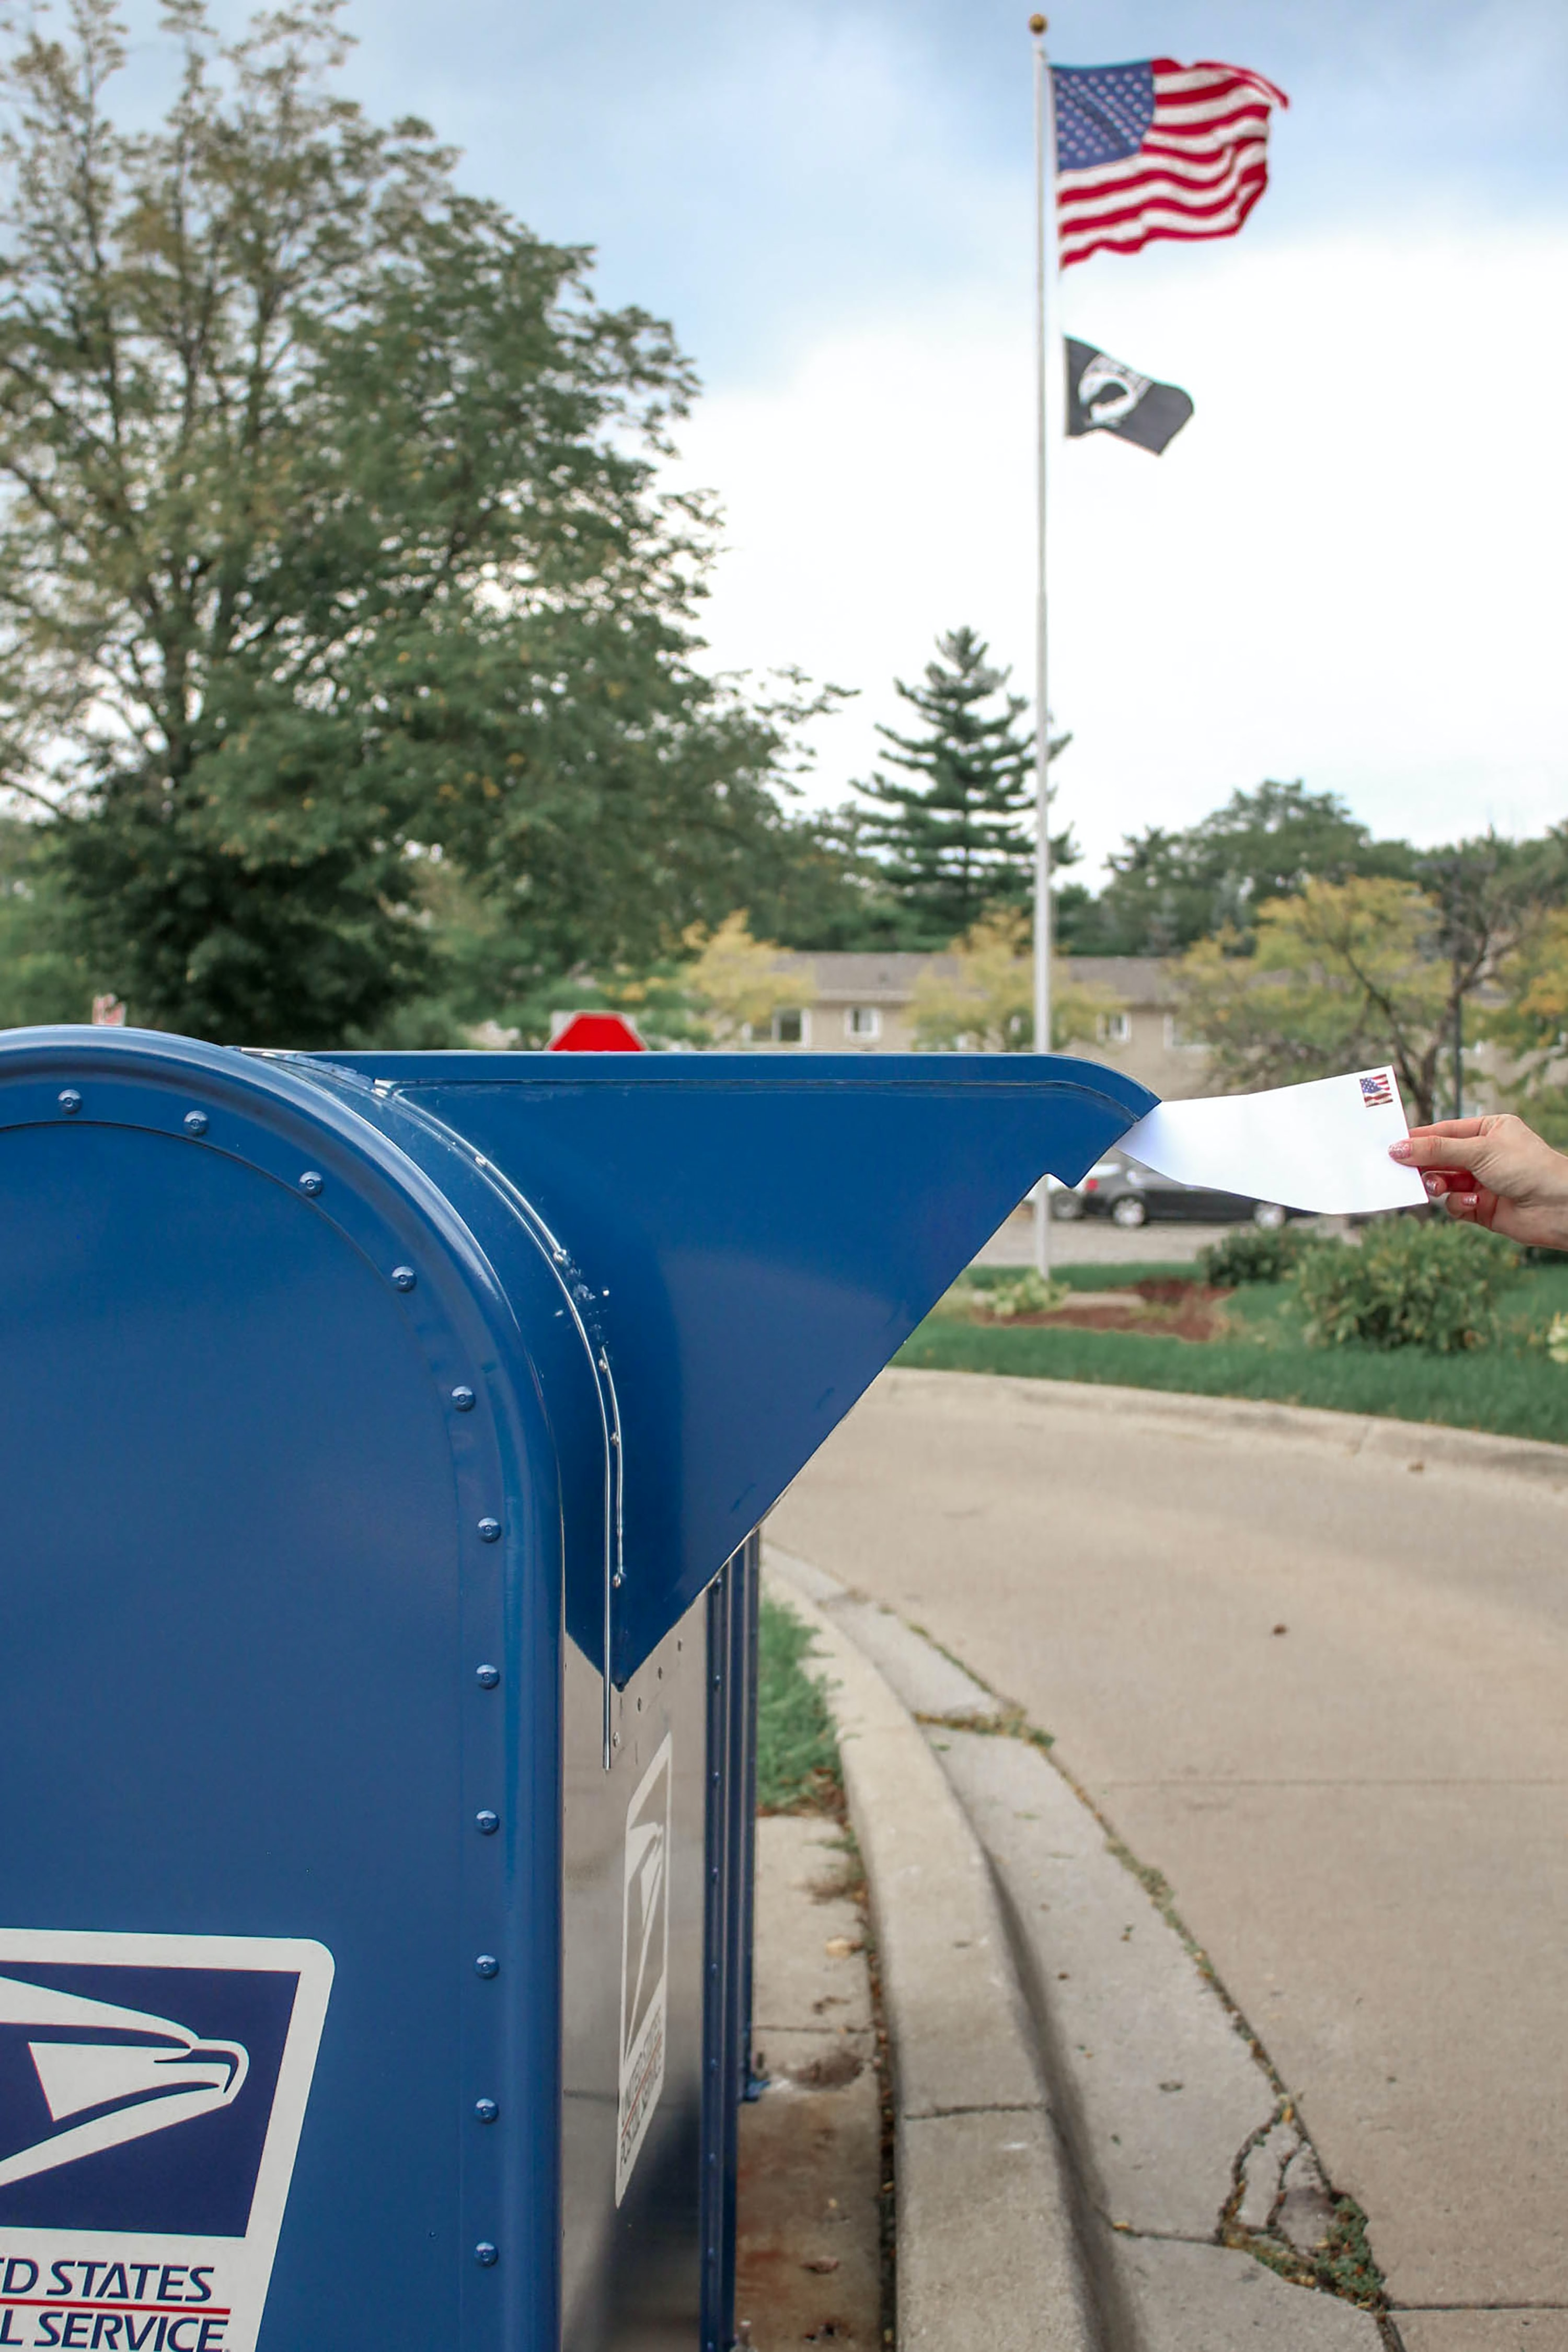 blue and white mail box